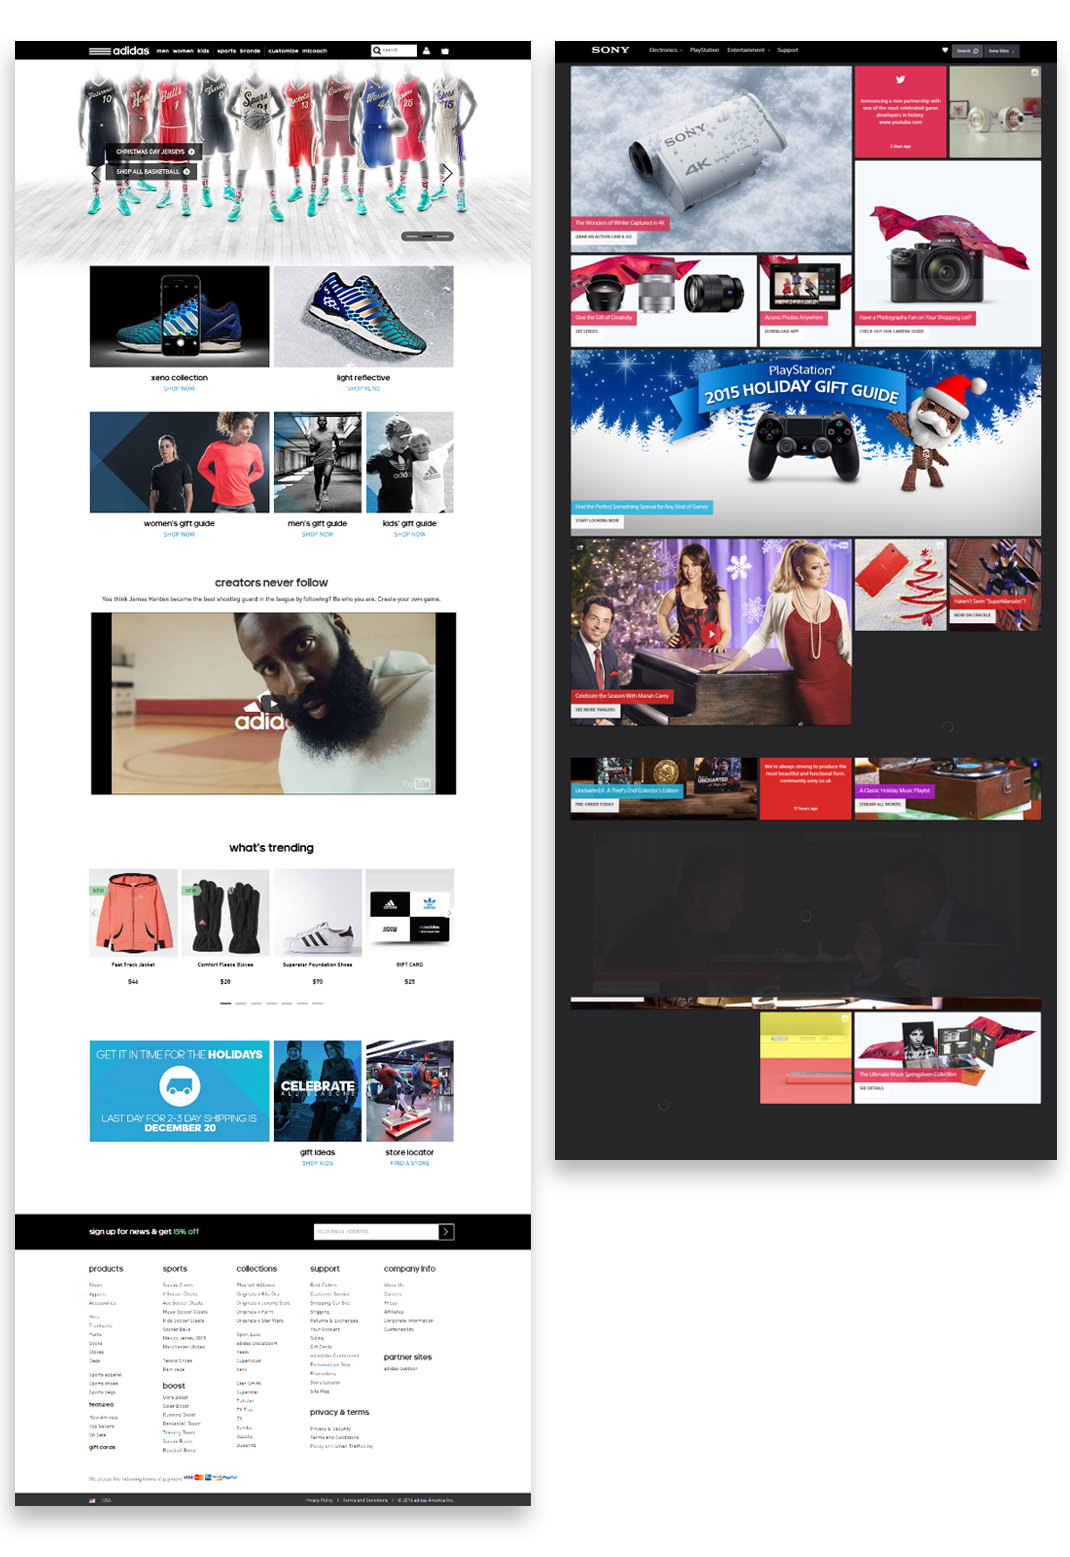 Adidas Home page & Sony